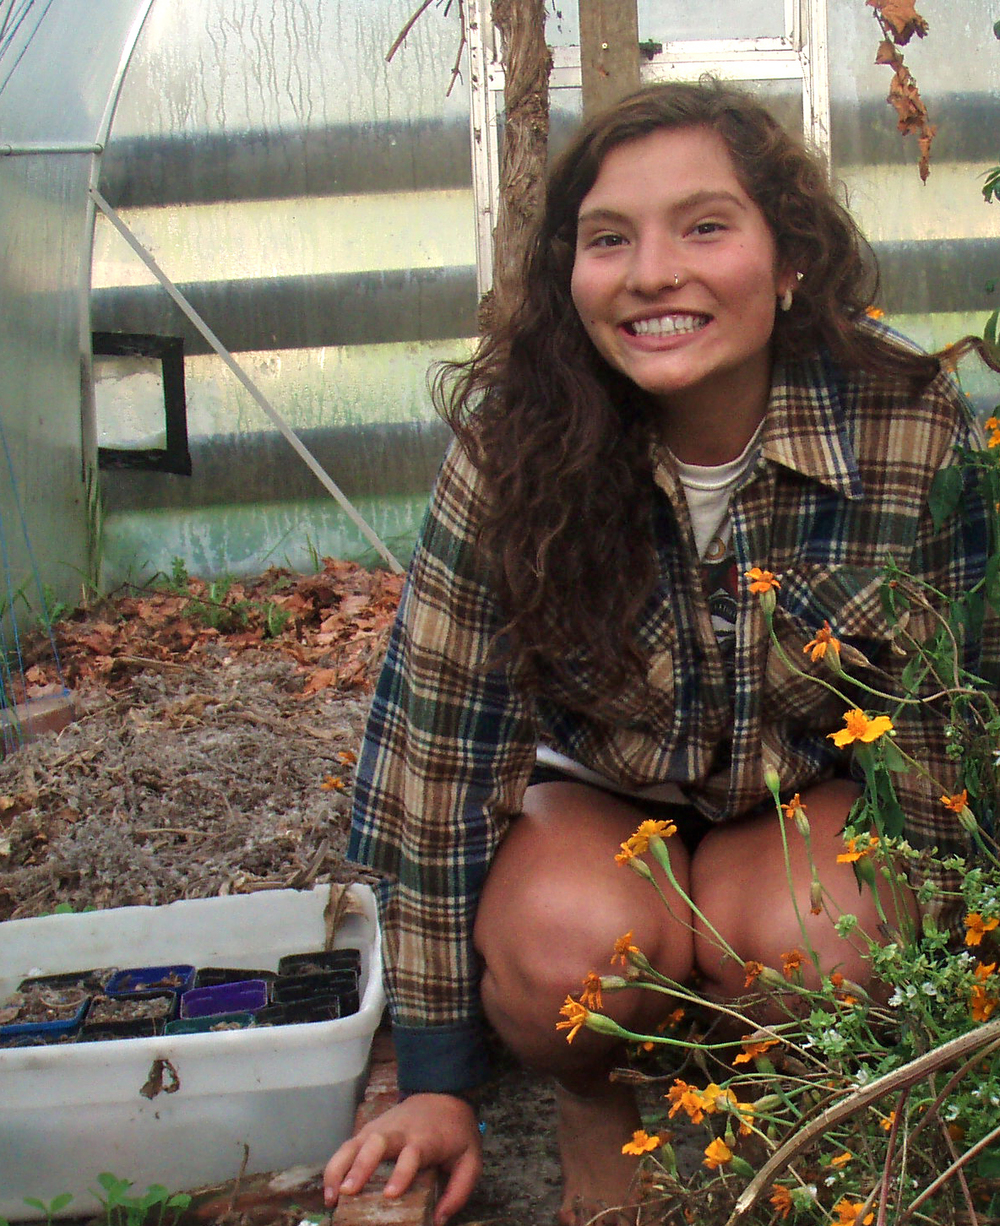 Lucy Roberts is the route curator and is passionate about community gardening as a volunteer at Urban Farm Collective.